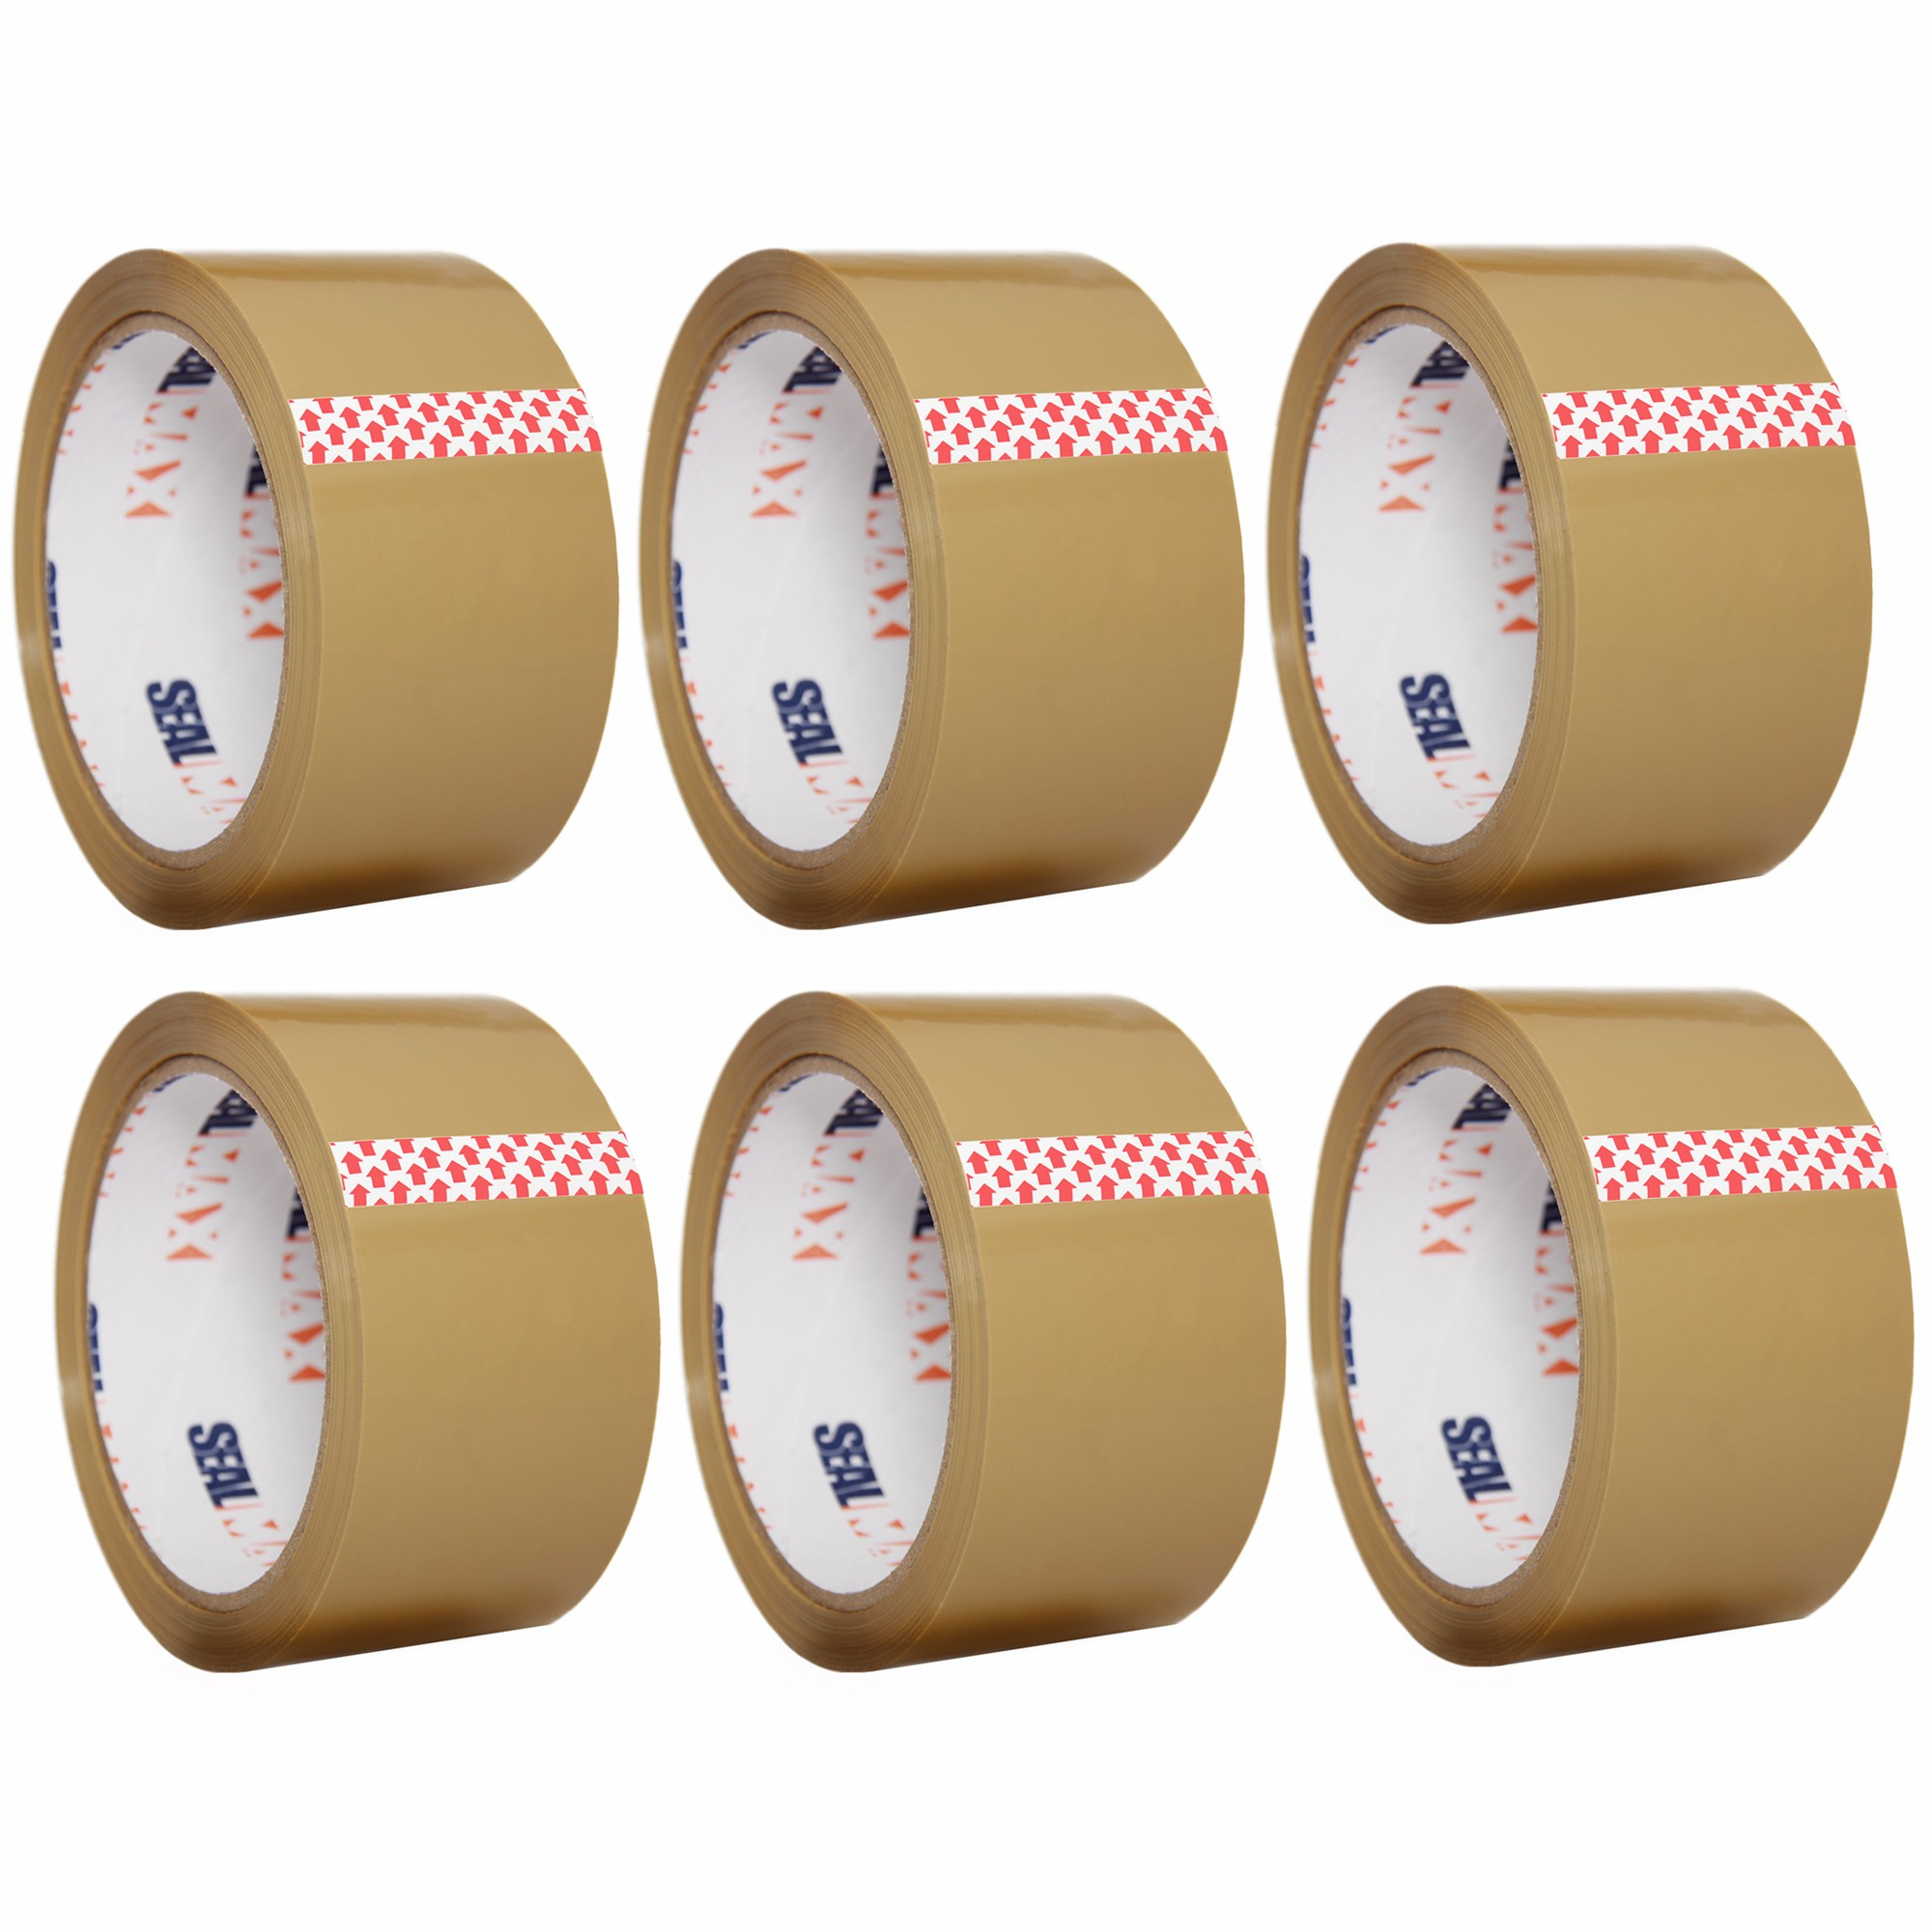 "SealMax By TOTALPACK® Tape Tan 2"" x 55 Yds. 2.1 Mil 6 Rolls Per Case"